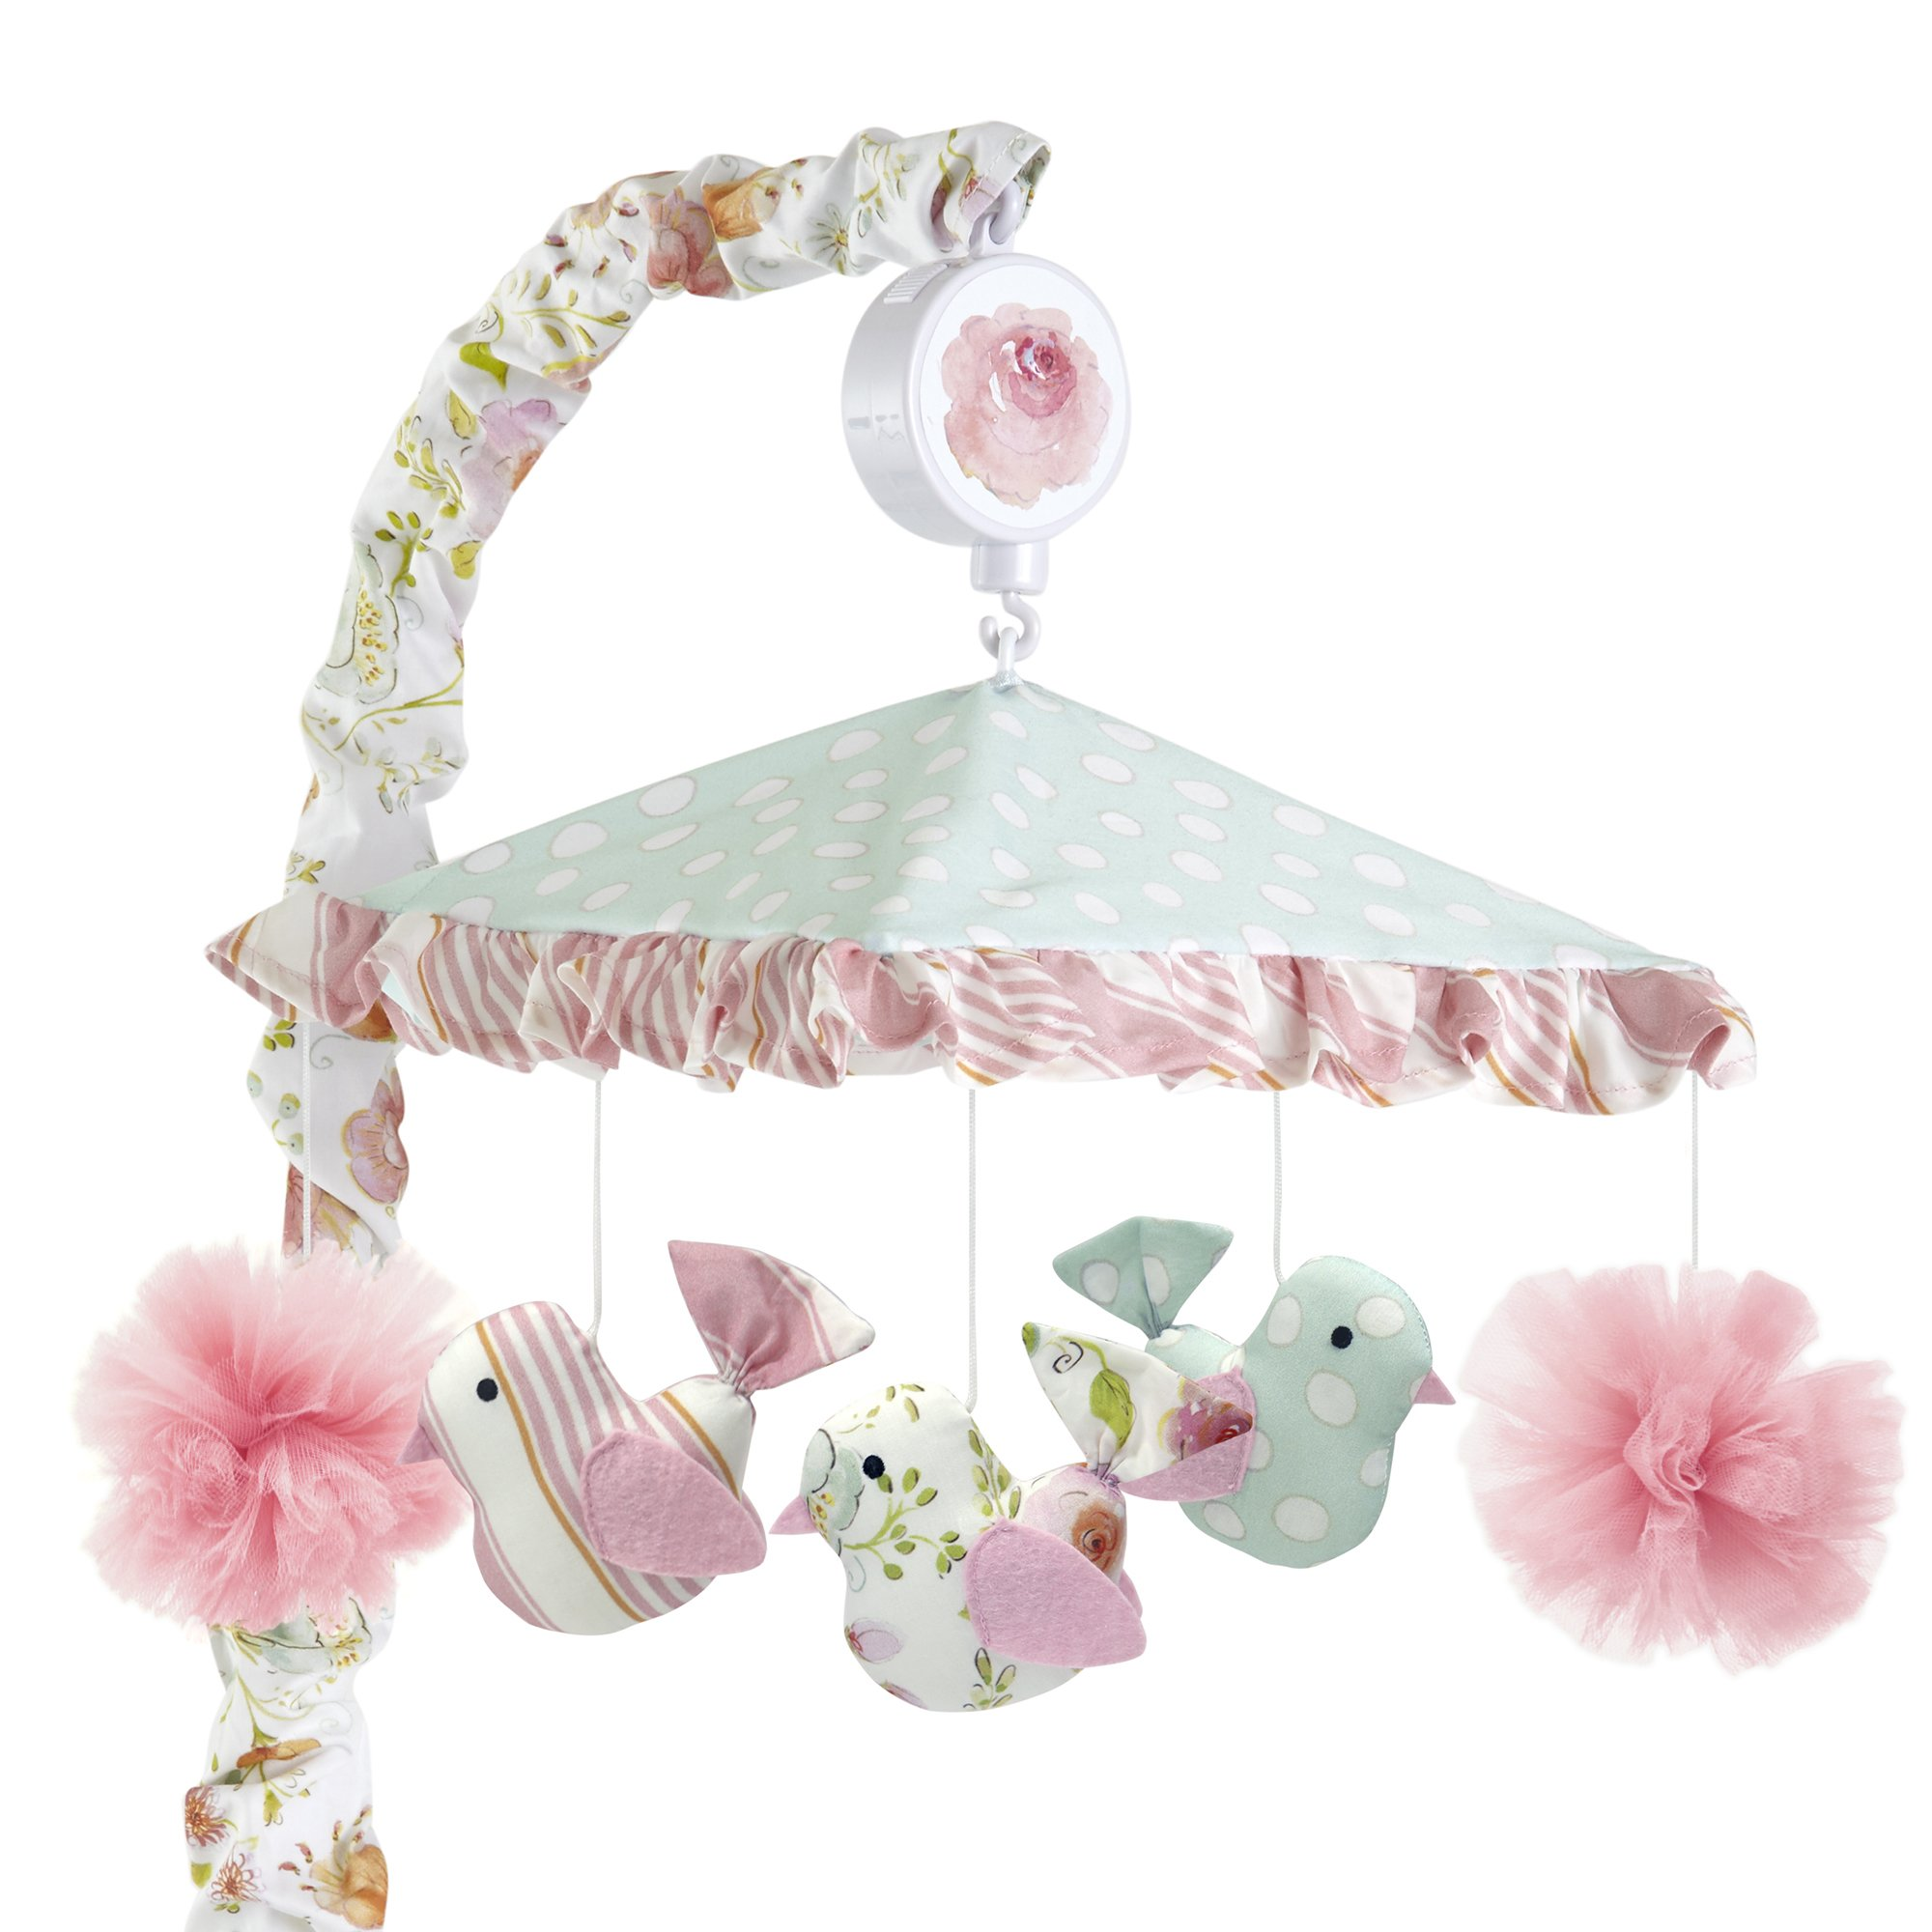 Happi by Dena Sweet Spring Floral Birds Musical Mobile, Pink/Blue